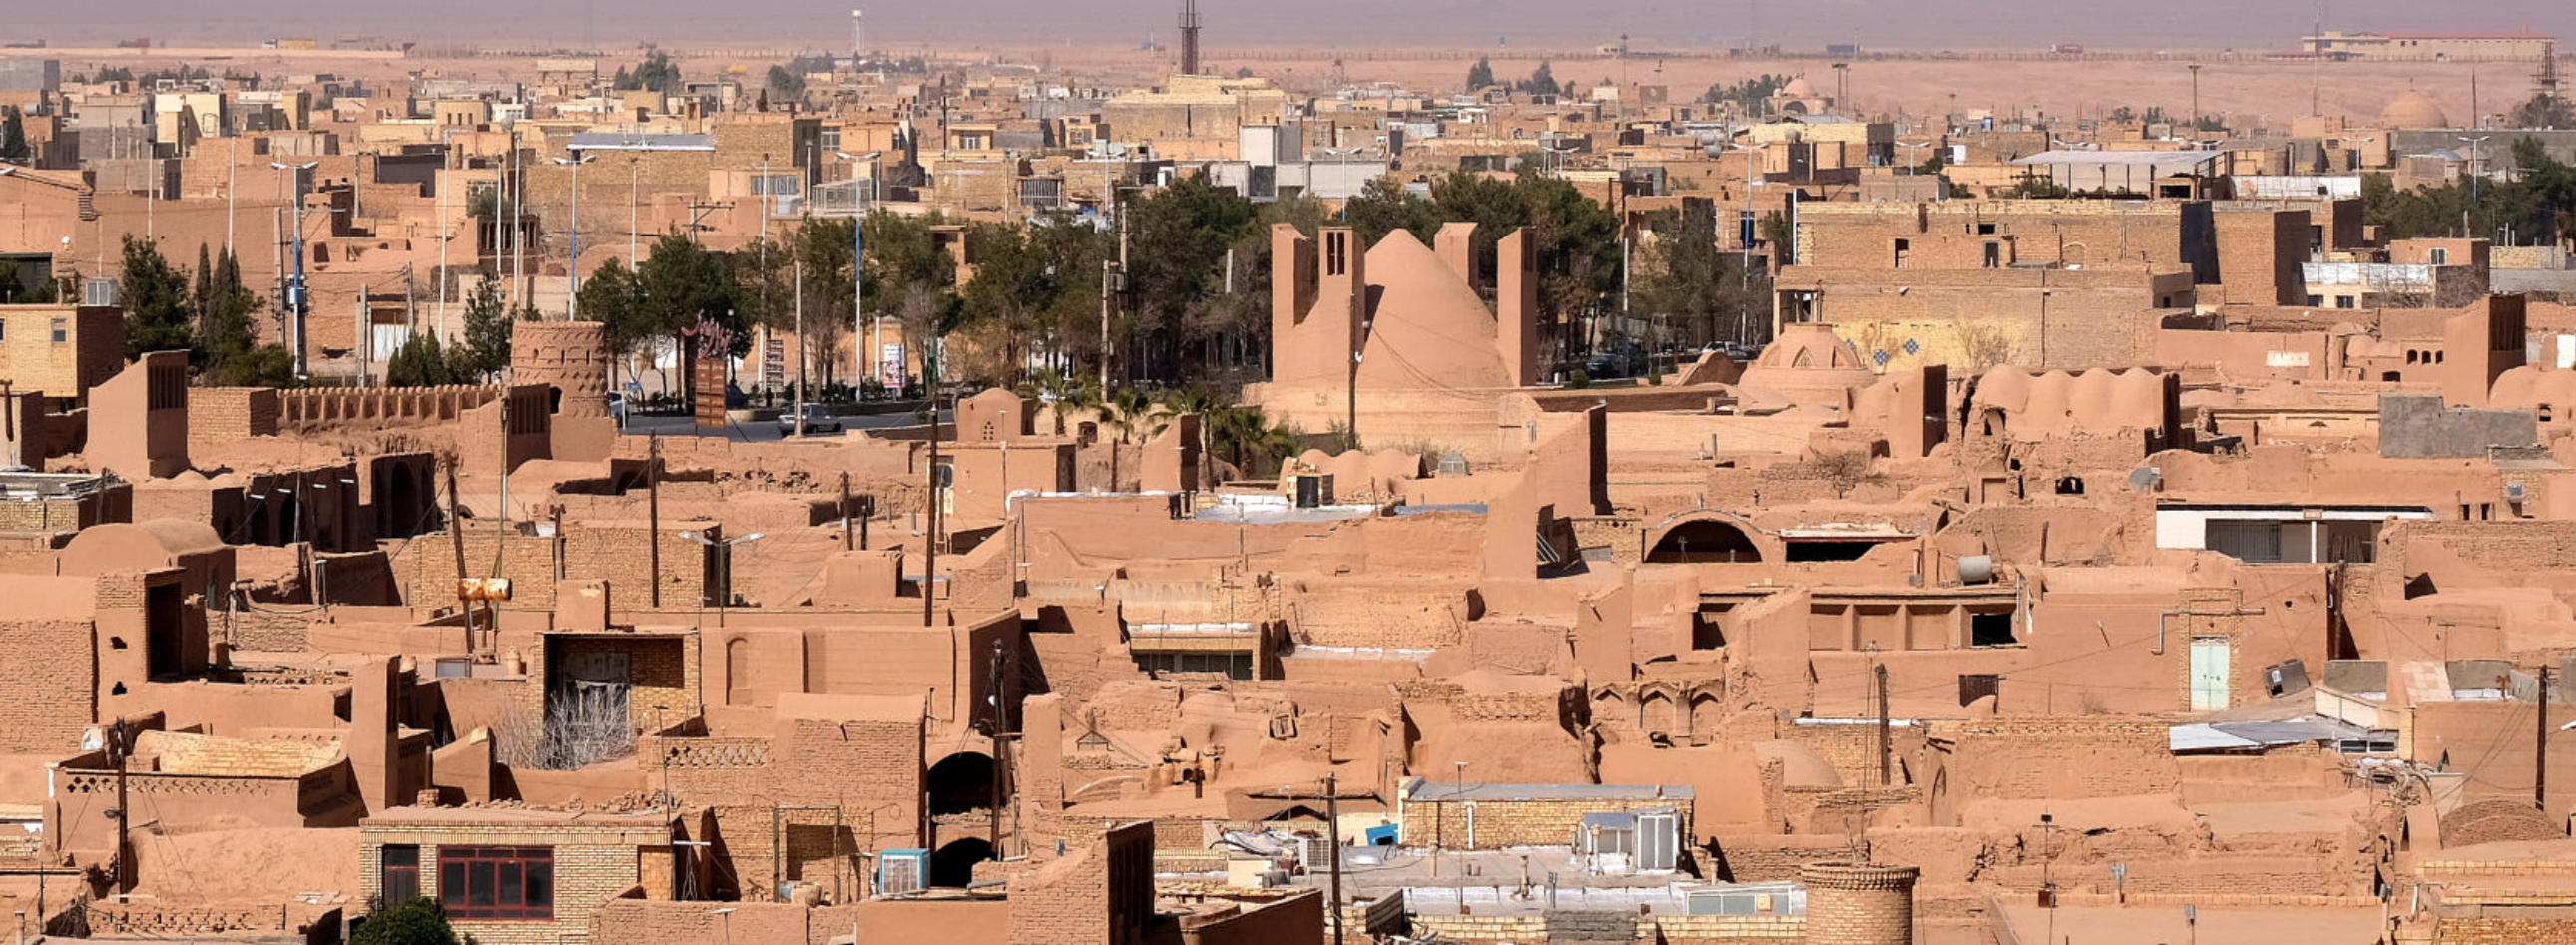 old city of yazd - oldest city of the world